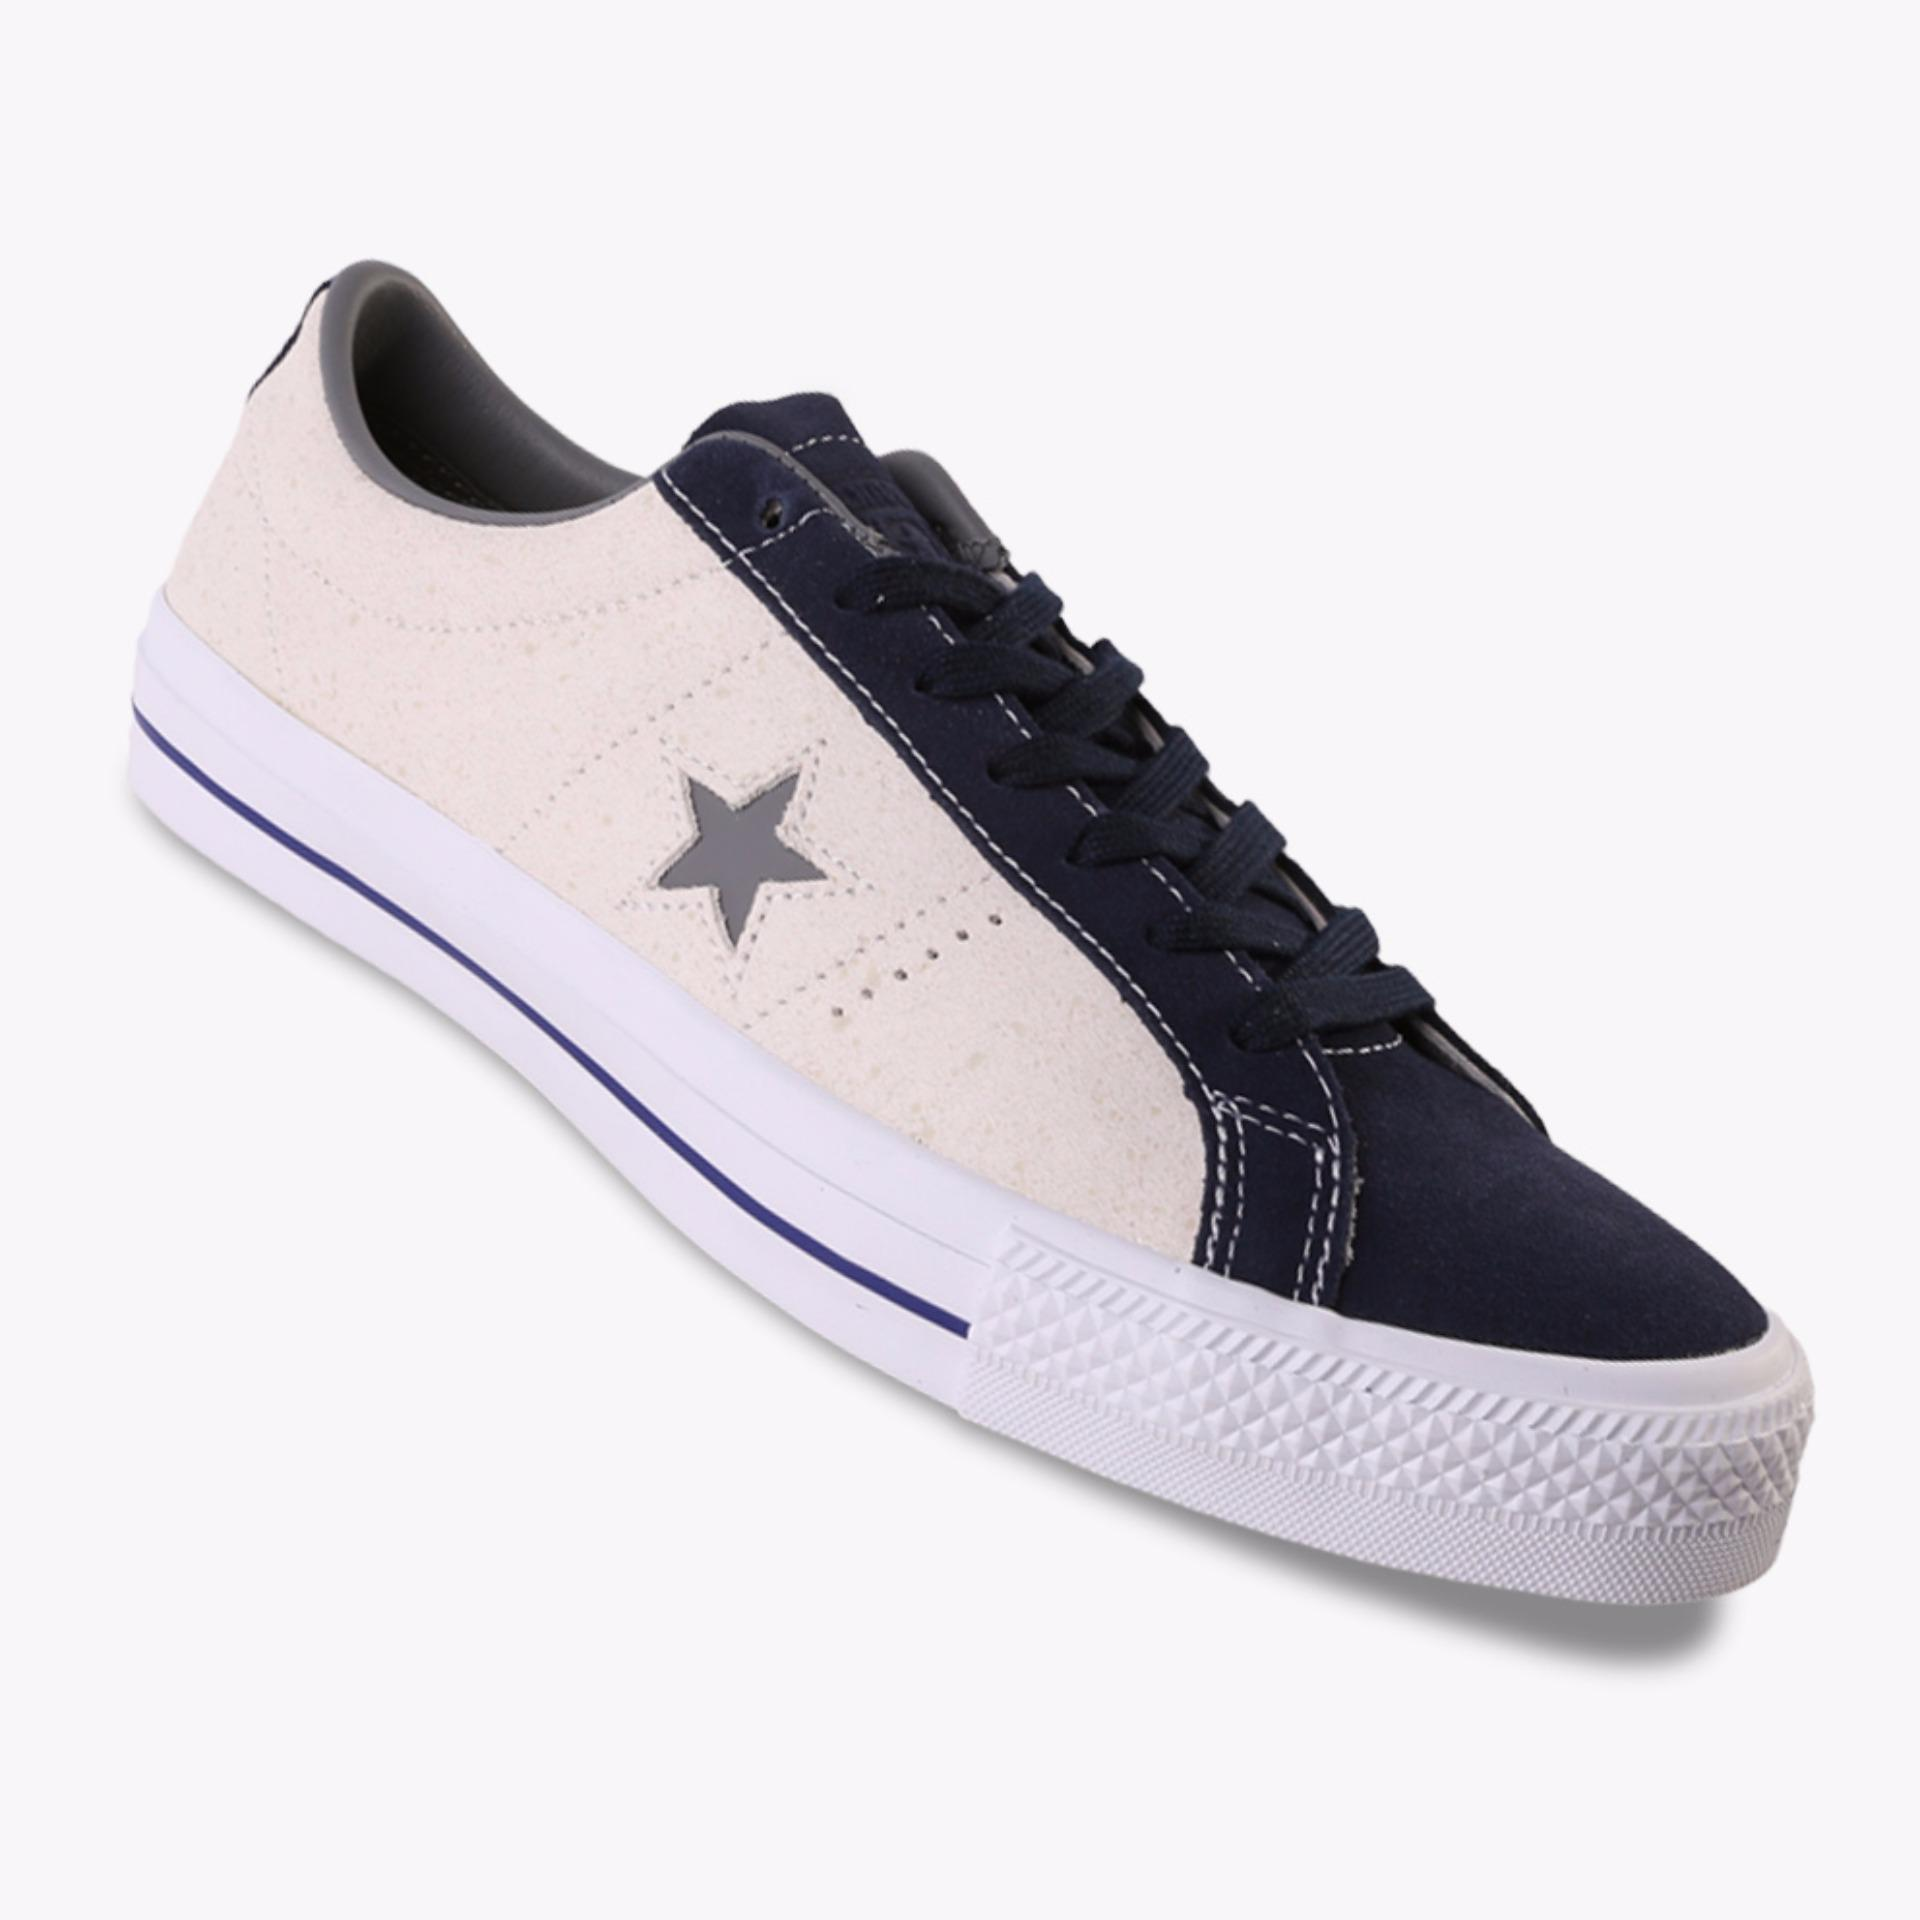 Spek Converse One Star Pro Ox Men S Sneakers Abu Abu Indonesia